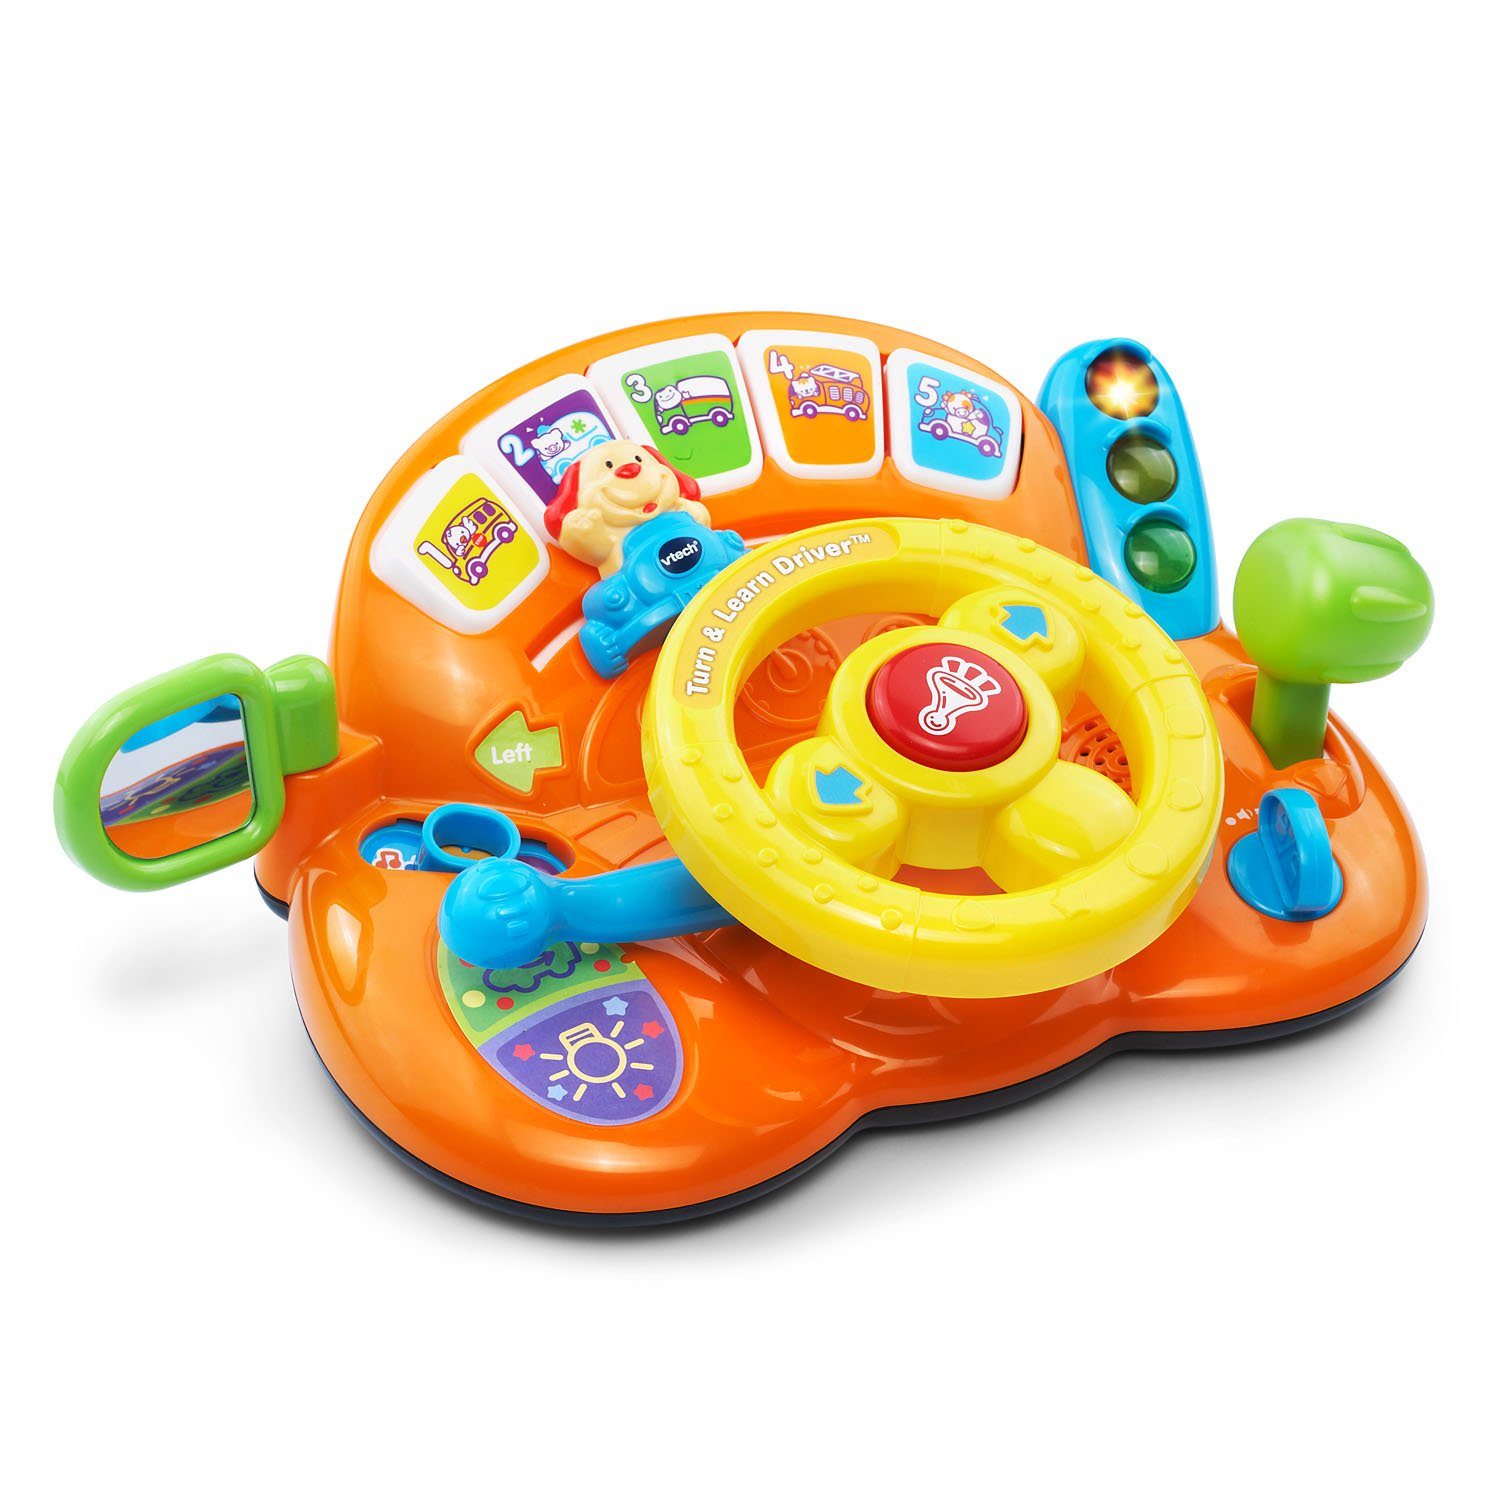 VTech Turn & Learn Driver Amazon Exclusive